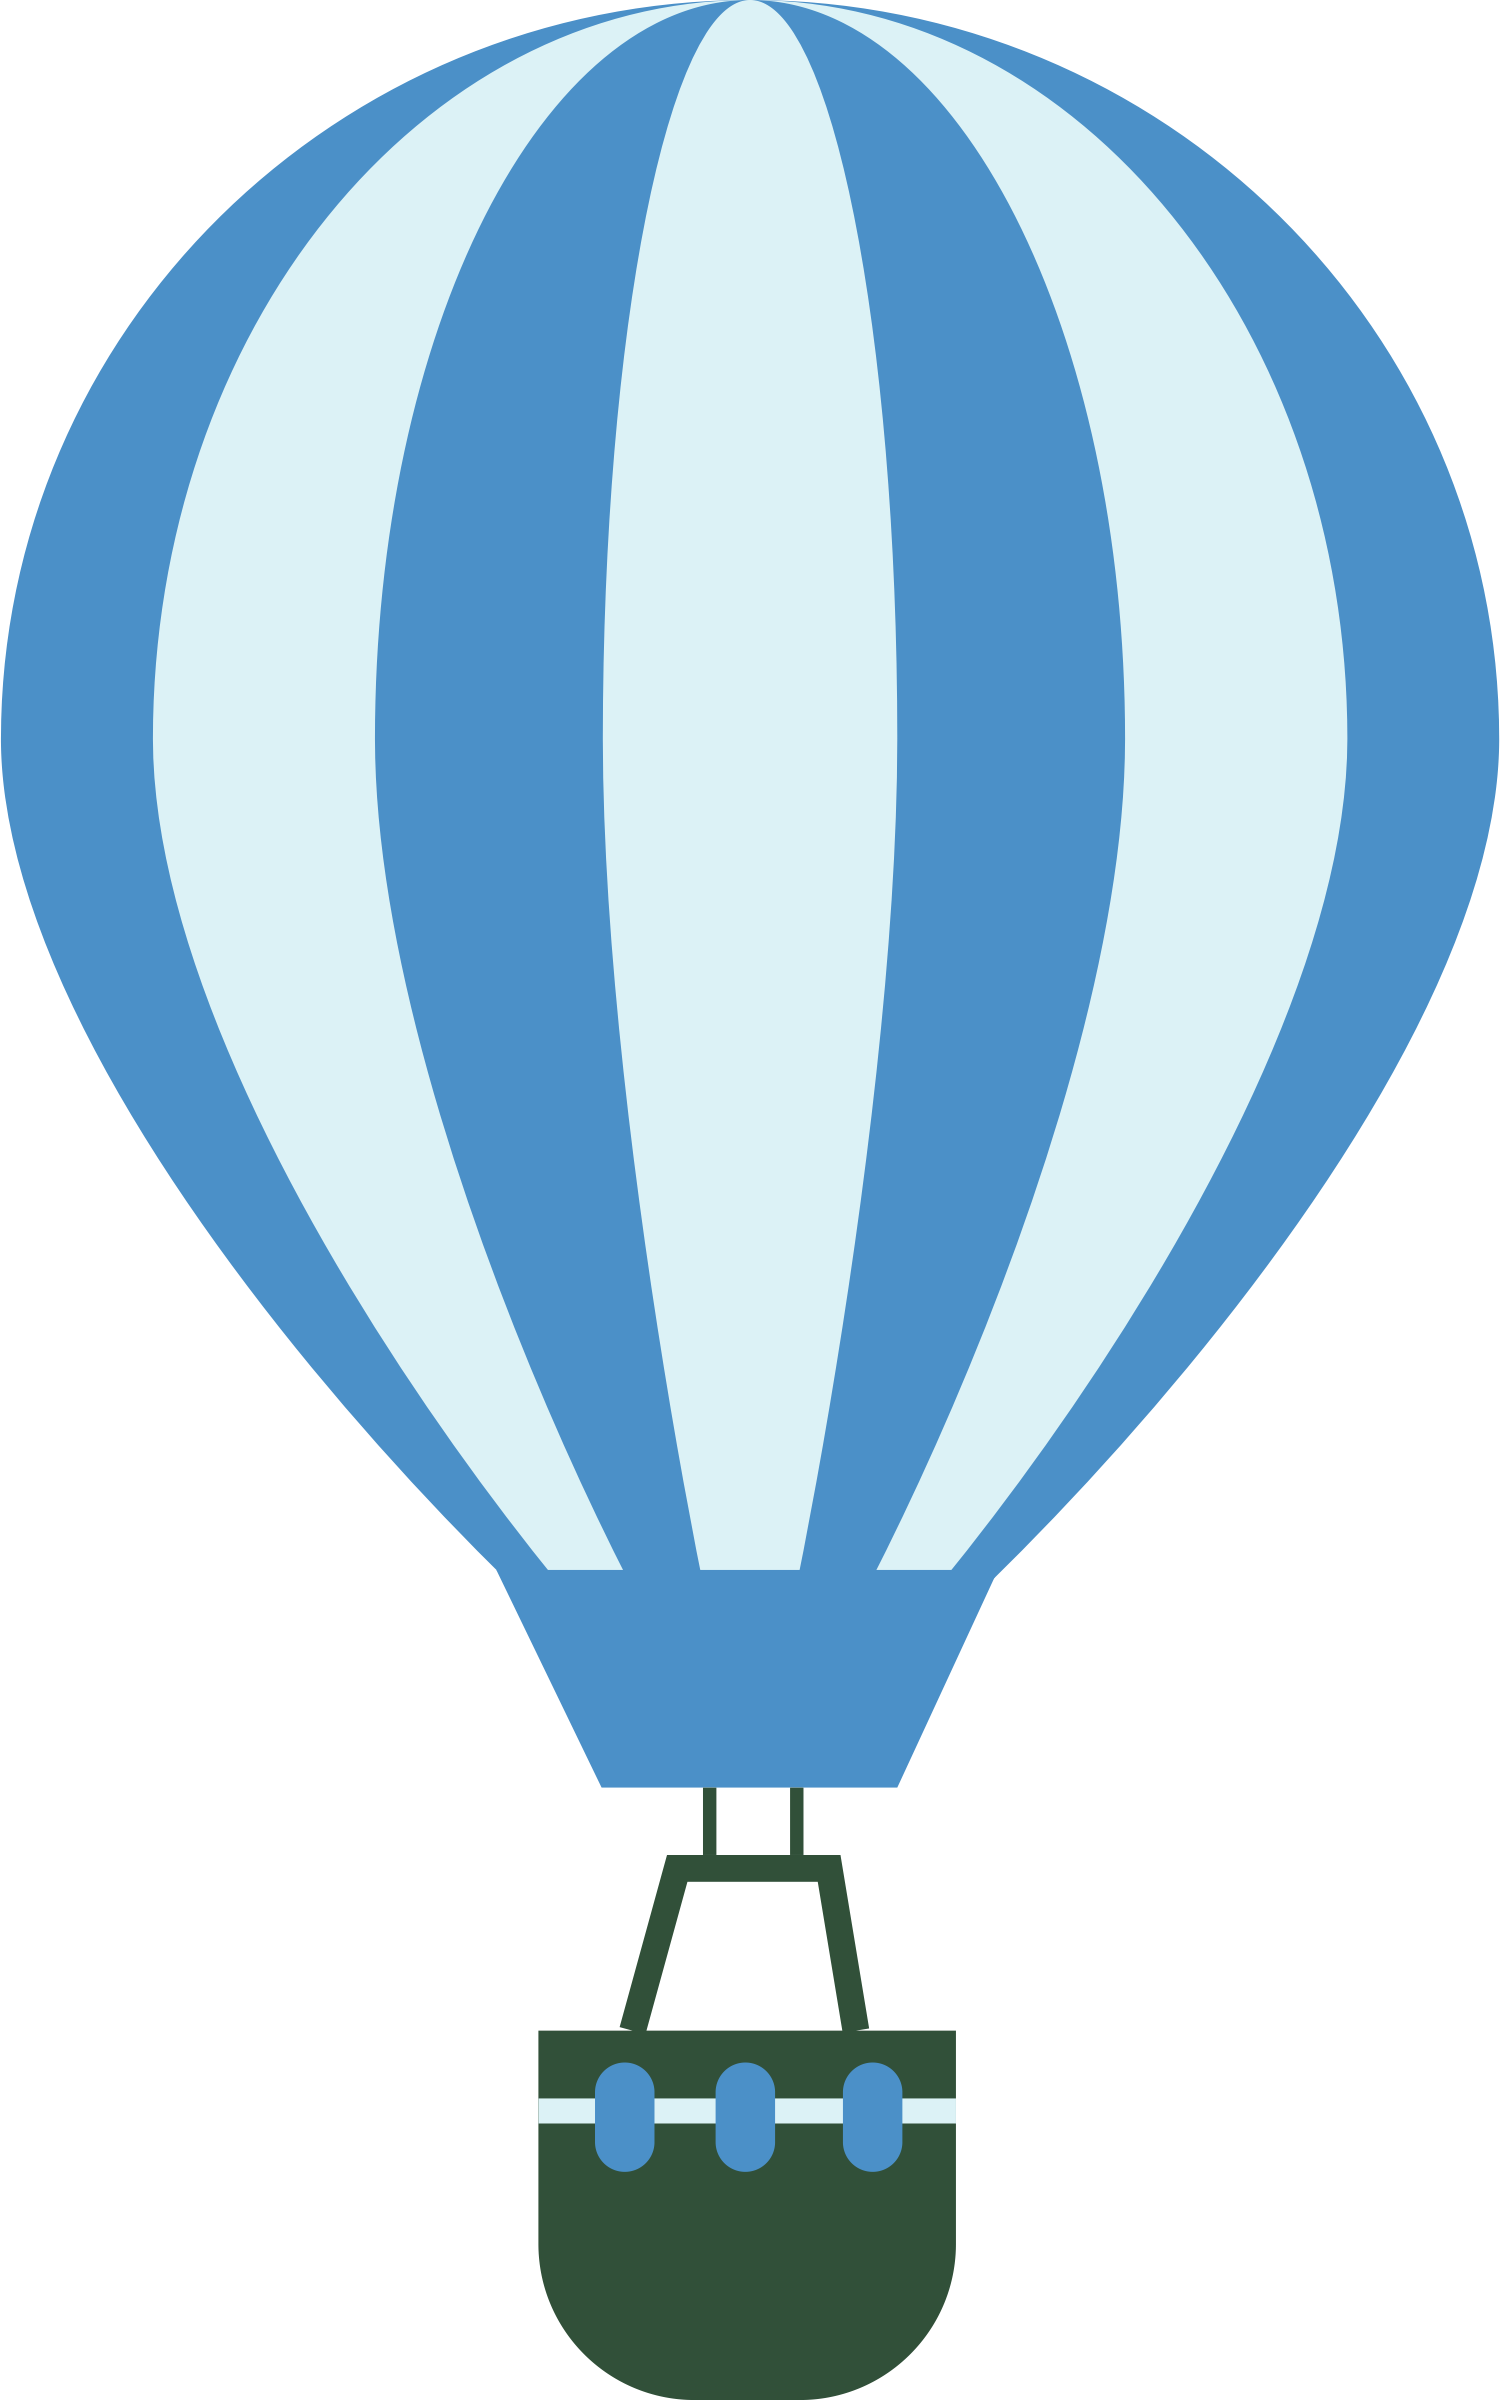 Clipart balloon teal. Big image png